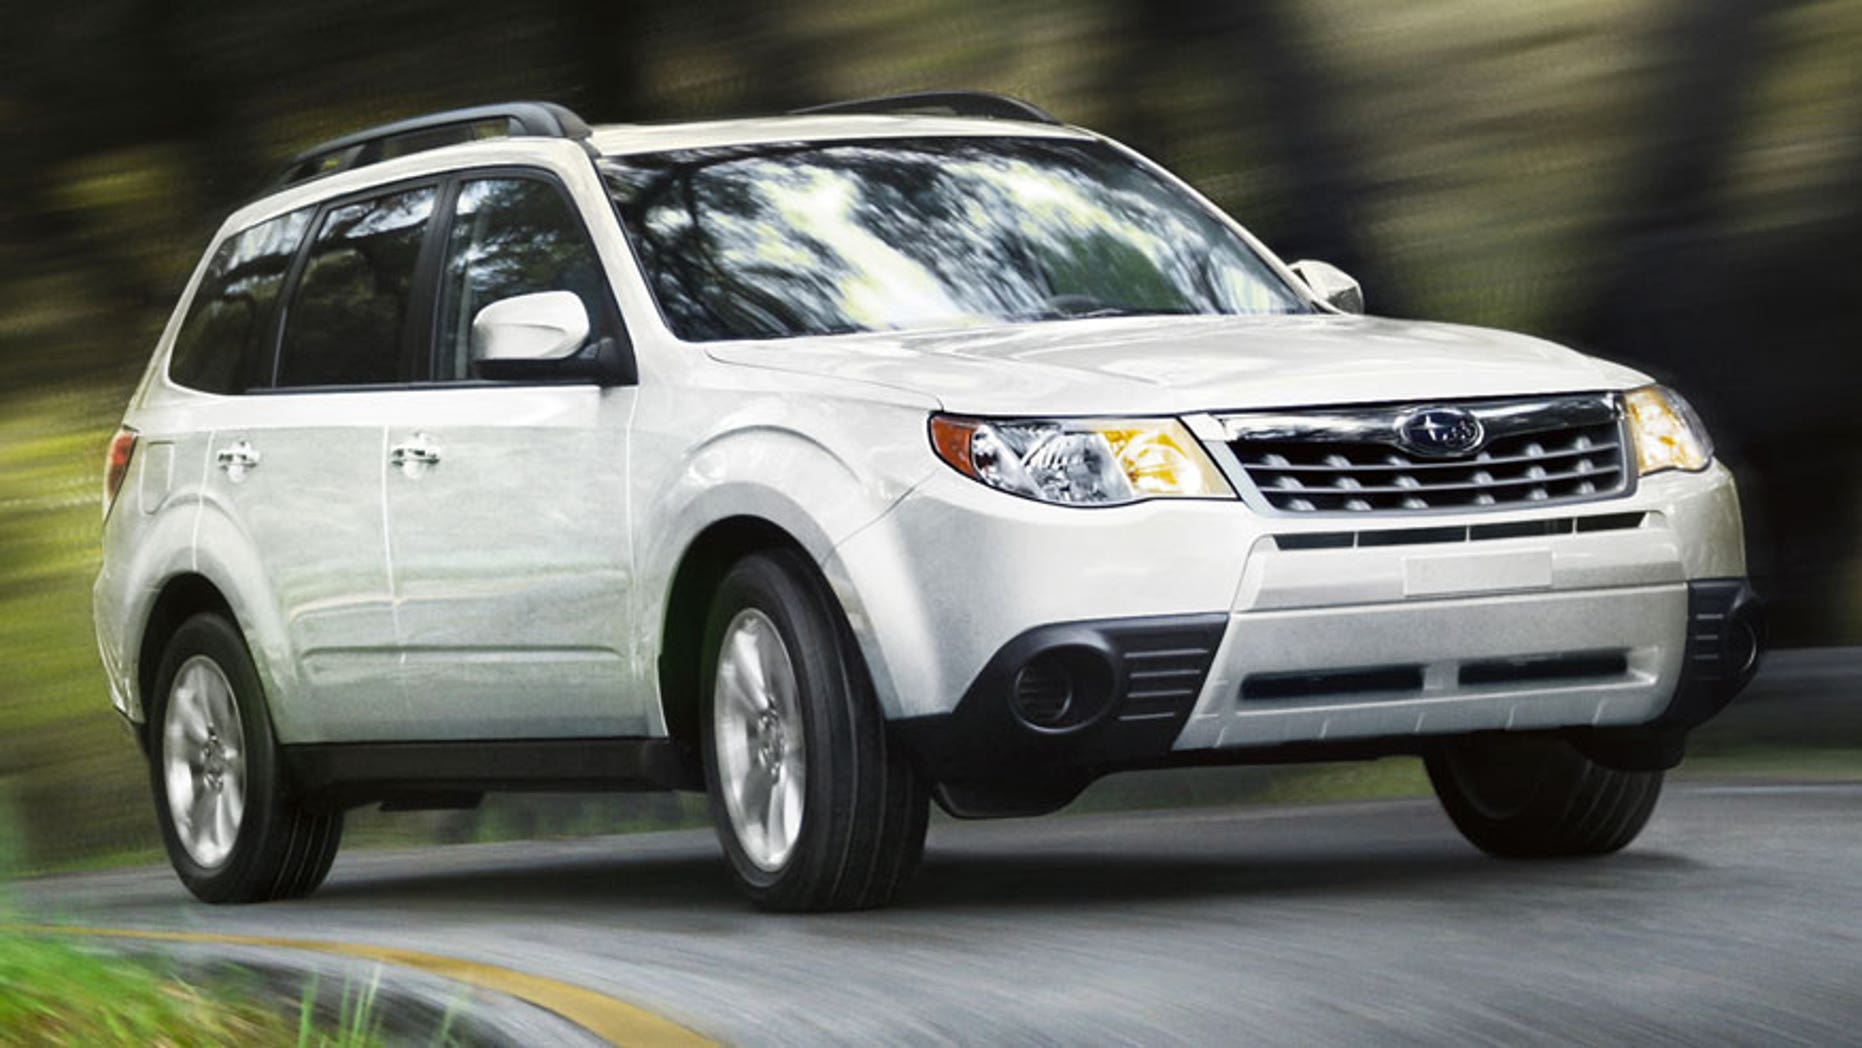 2012 Subaru Forester. Current price from dealer: $18,895 (original MSRP: $21,795.) The Forester has been one of our top-rated Small SUVs with a quiet cabin, very good fit and finish, and a roomy backseat. It has the most comfortable ride of any small SUV yet also has agile and secure handling.  Fuel economy is 22 mpg overall with the 170-horsepower, 2.5-liter, four-cylinder engine. Safety equipment includes standard curtain air bags and stability control, and crash-test results are excellent.